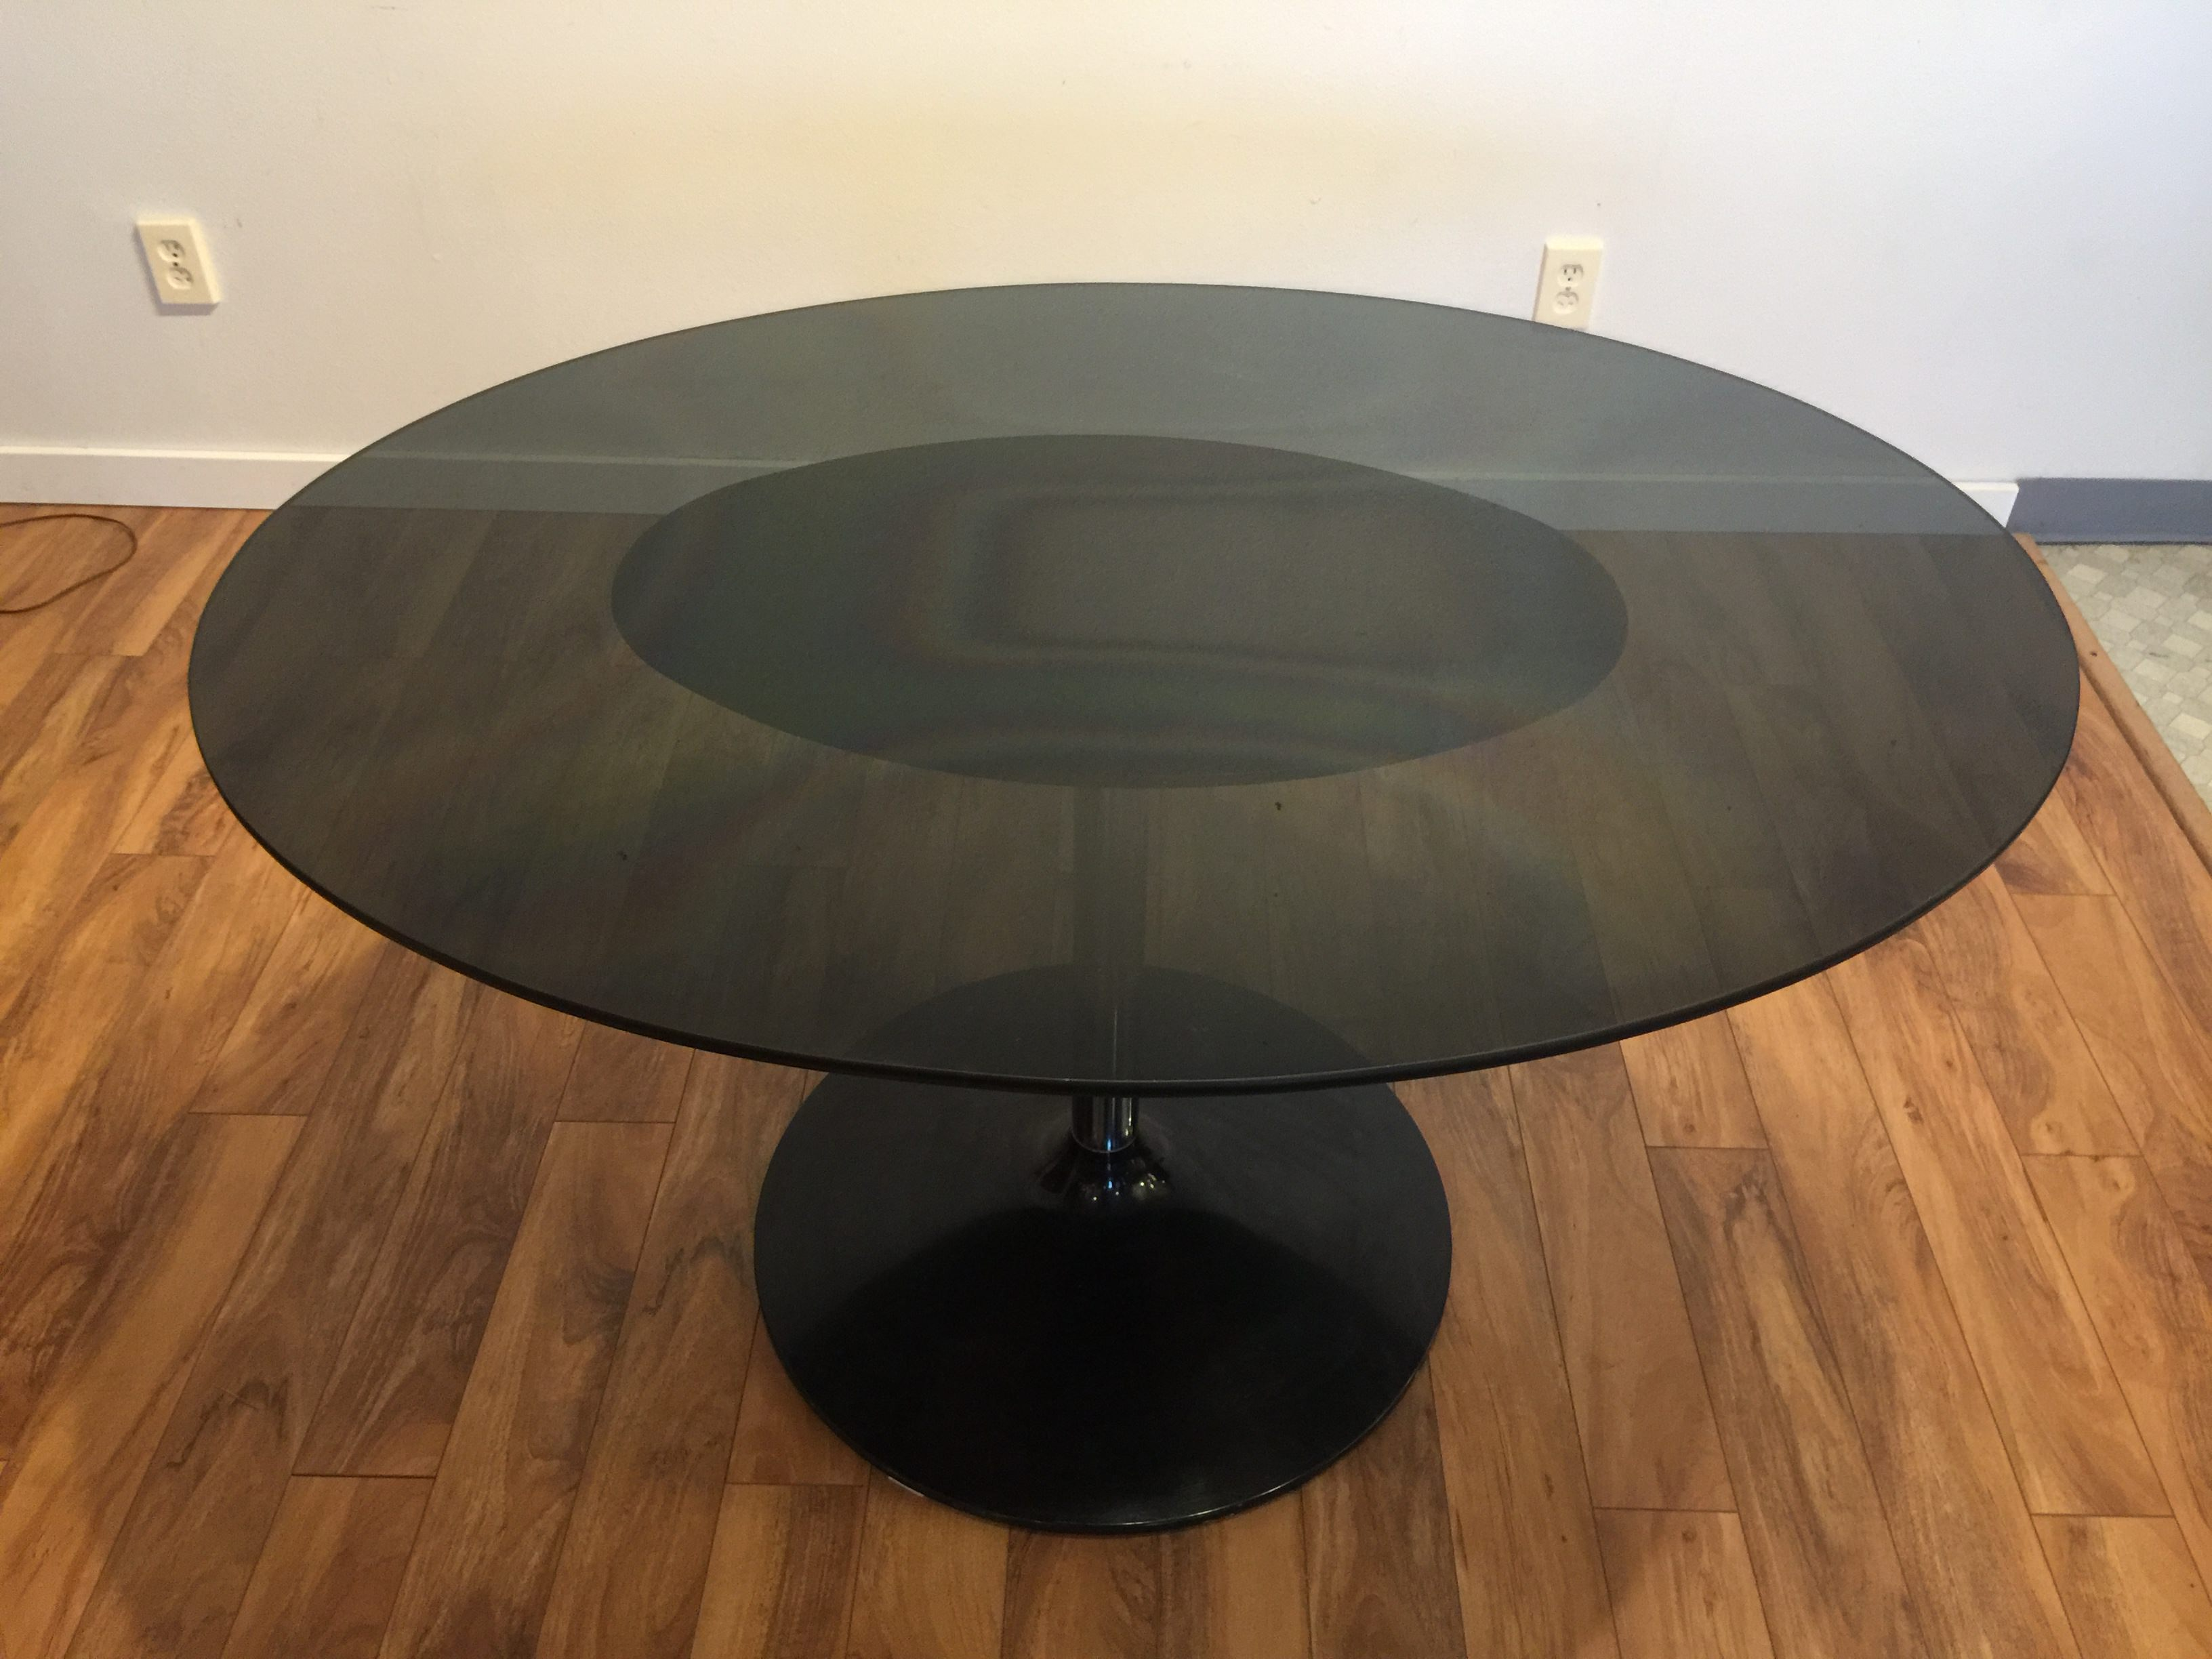 SOLD Vintage Smoked Glass Oval Dining Table Modern To Vintage